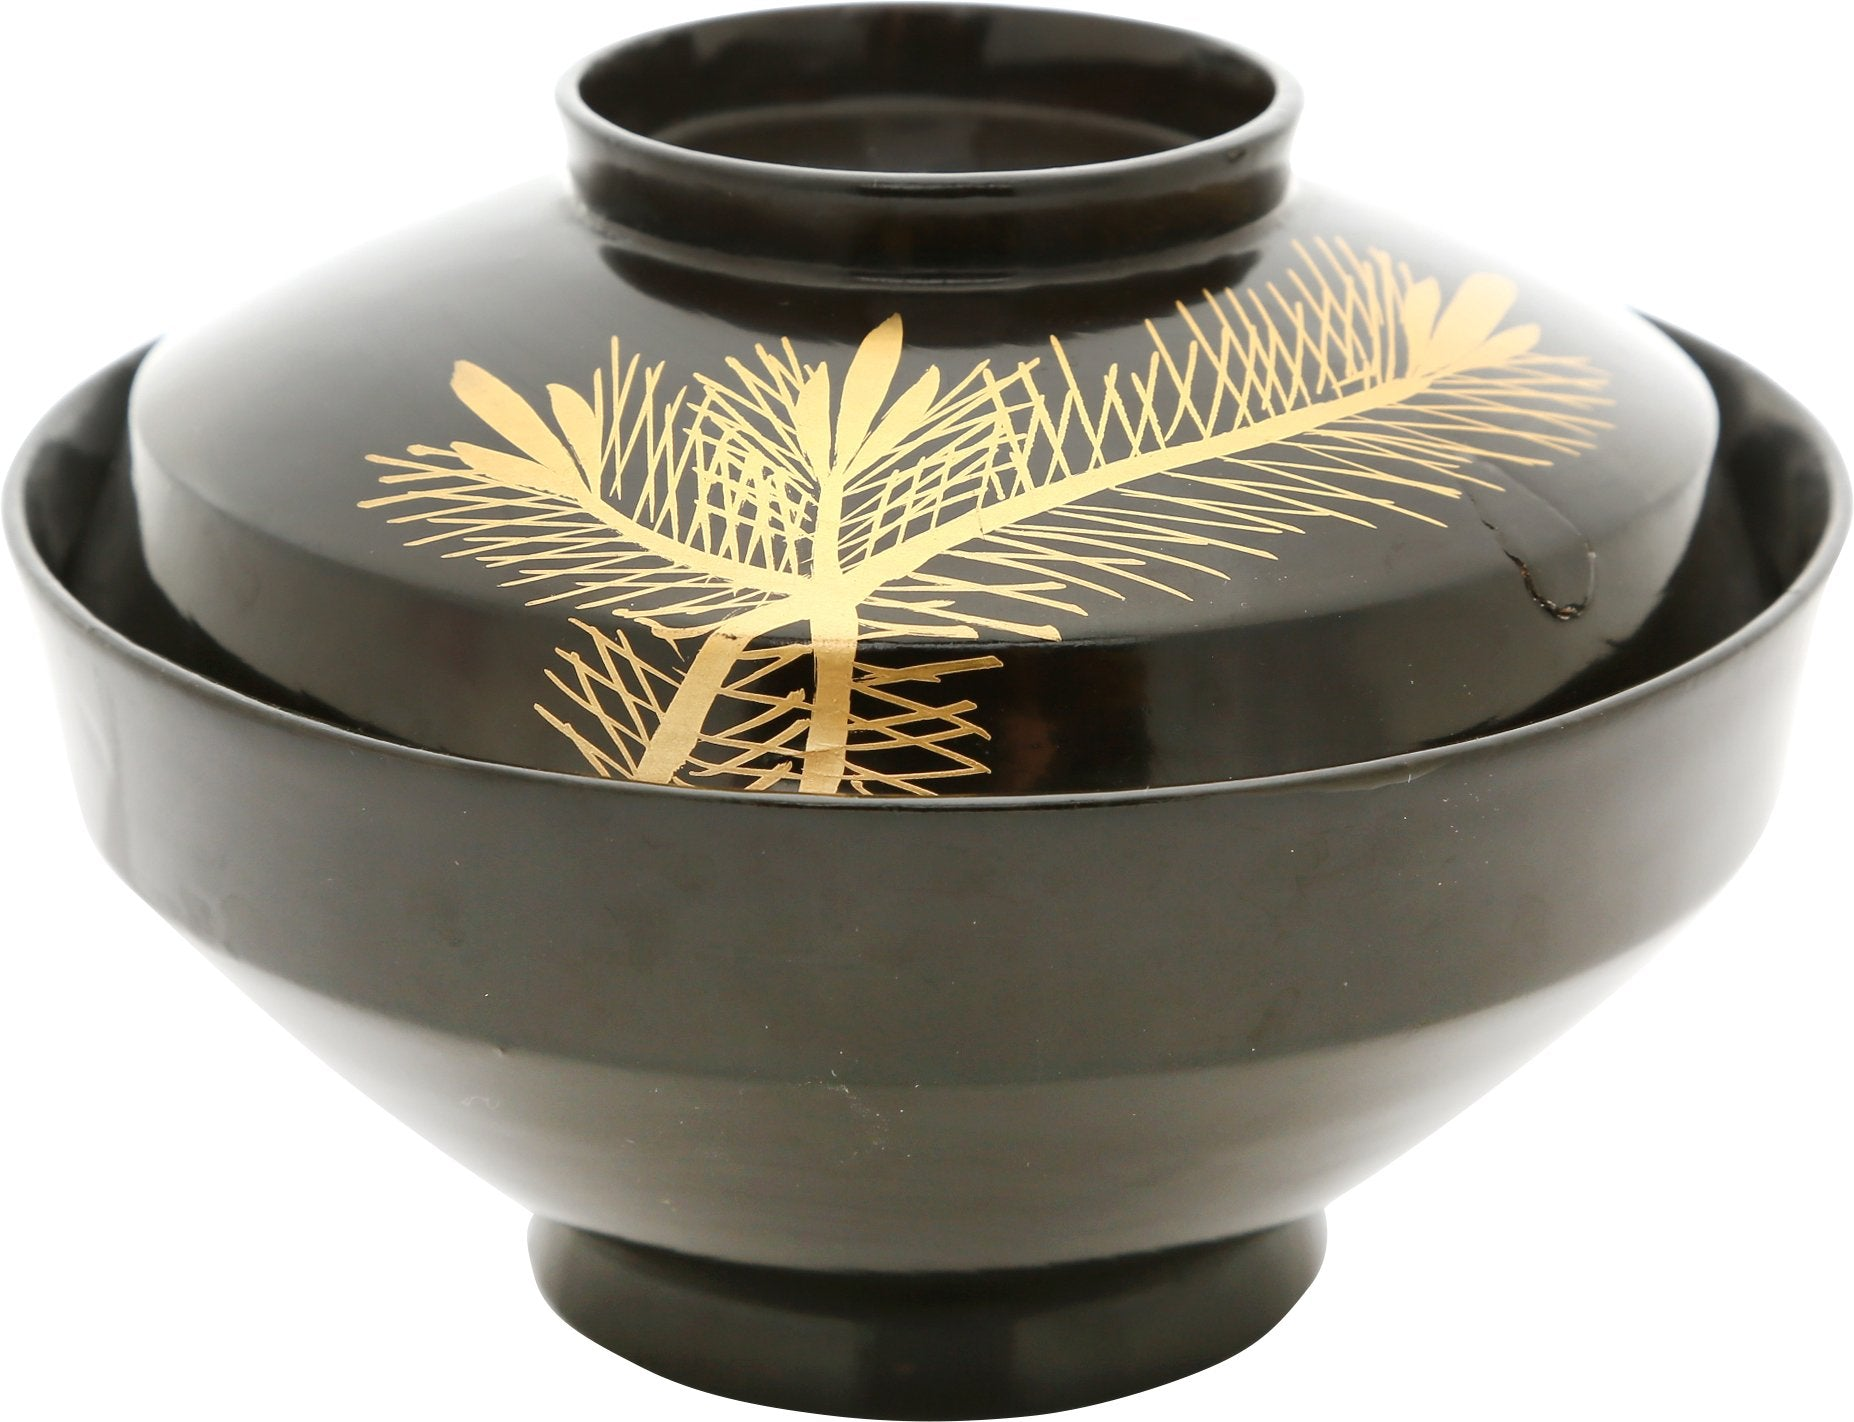 JAPANESE LACQUERED BOWL OWAN, MEIJI PERIOD.  1867-1912